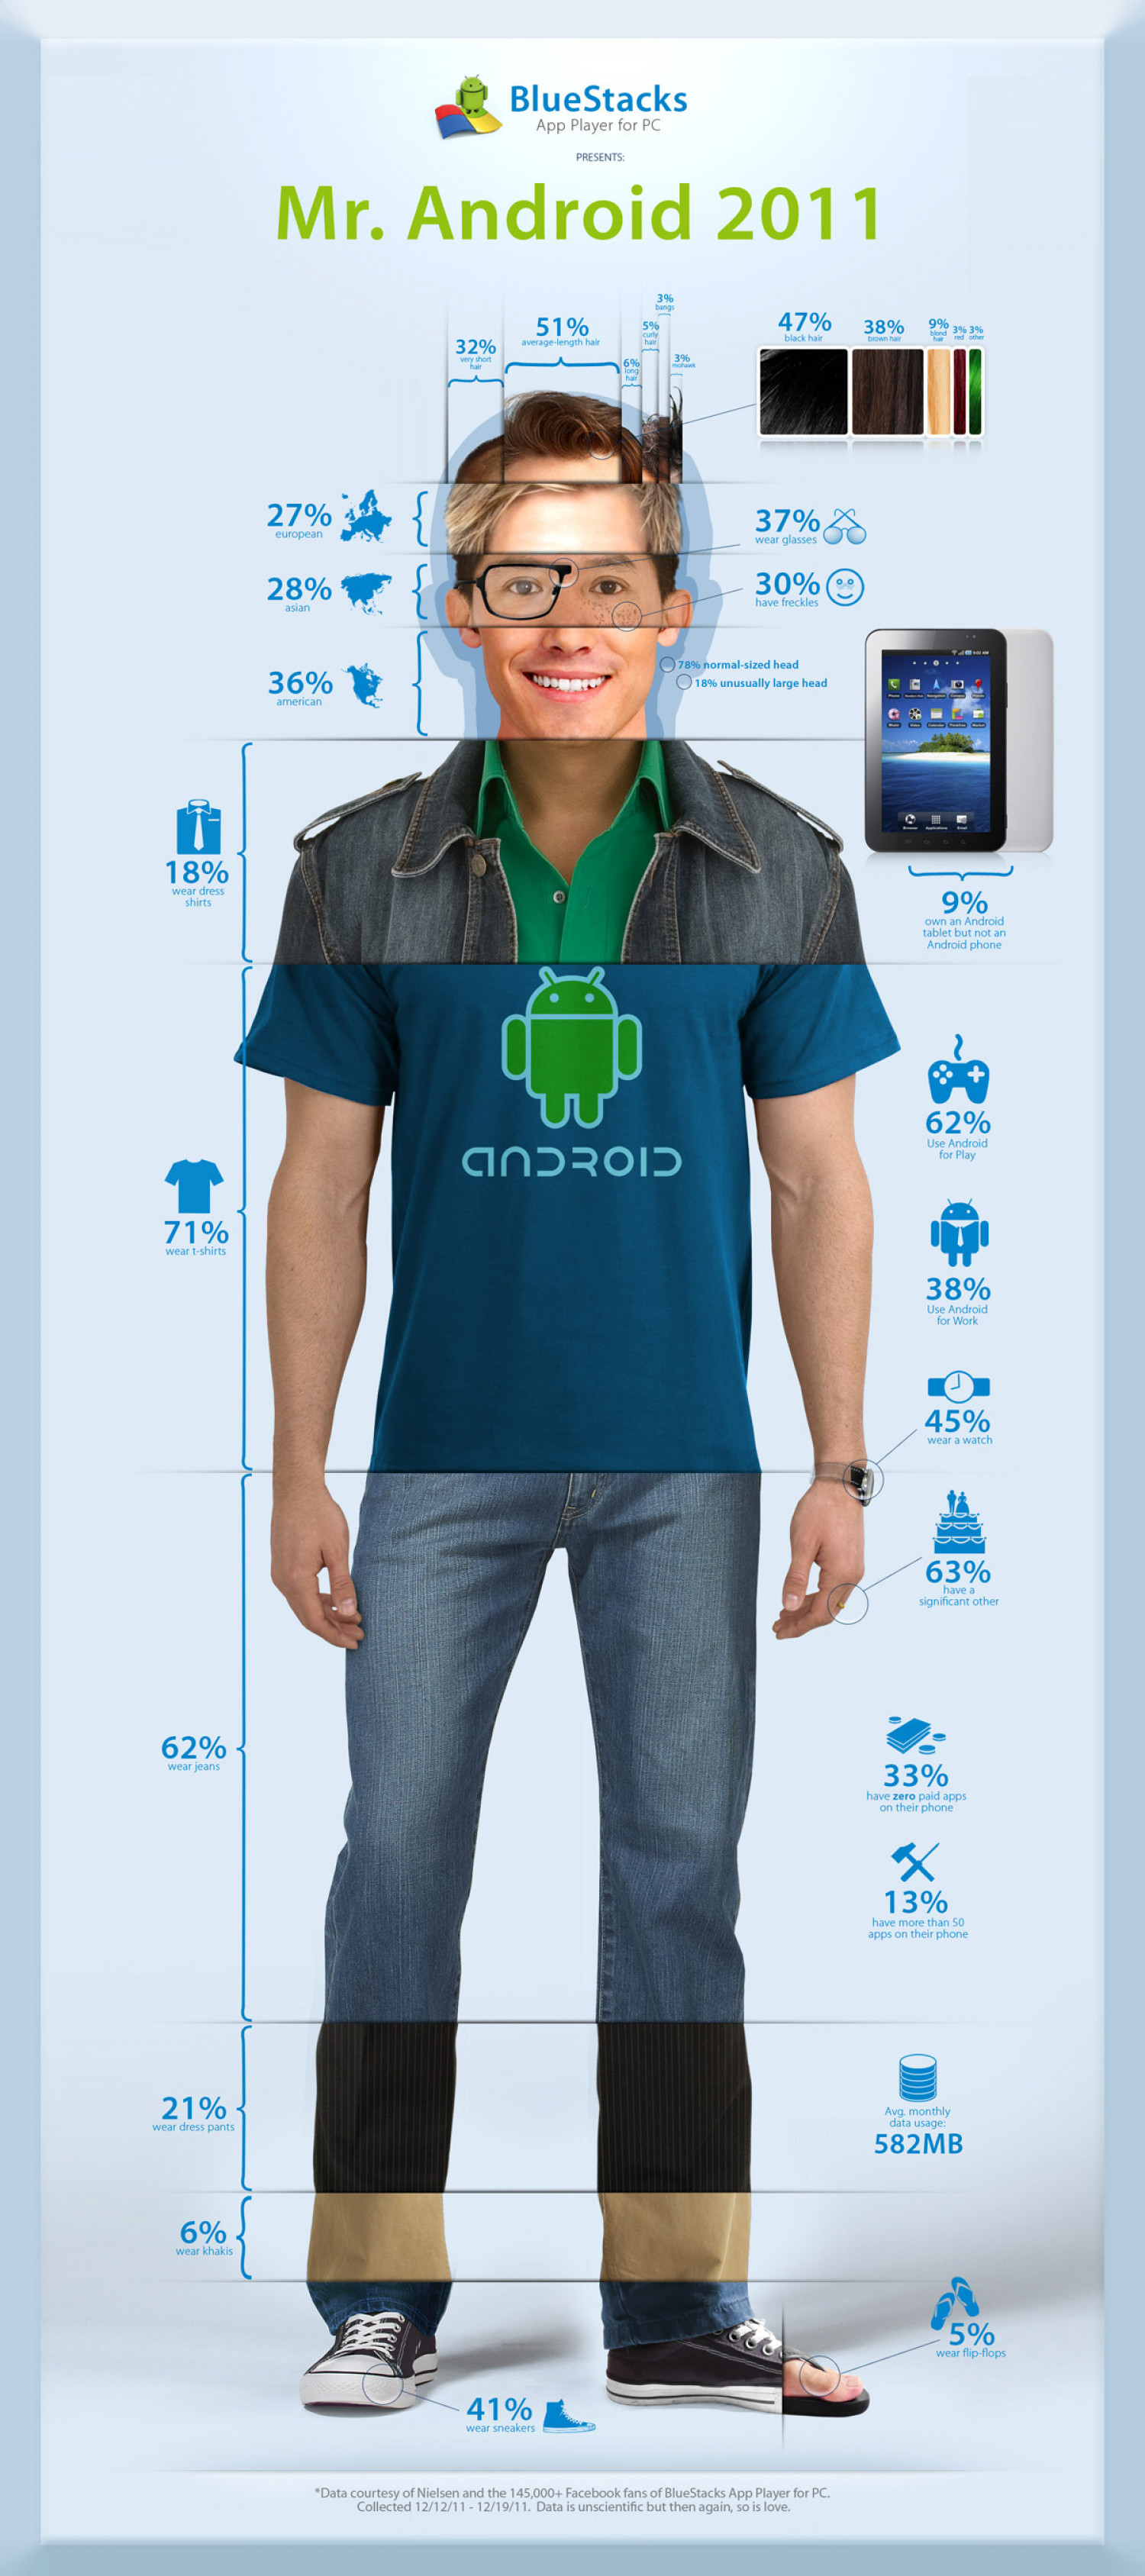 Mr. Android 2011 Infographic